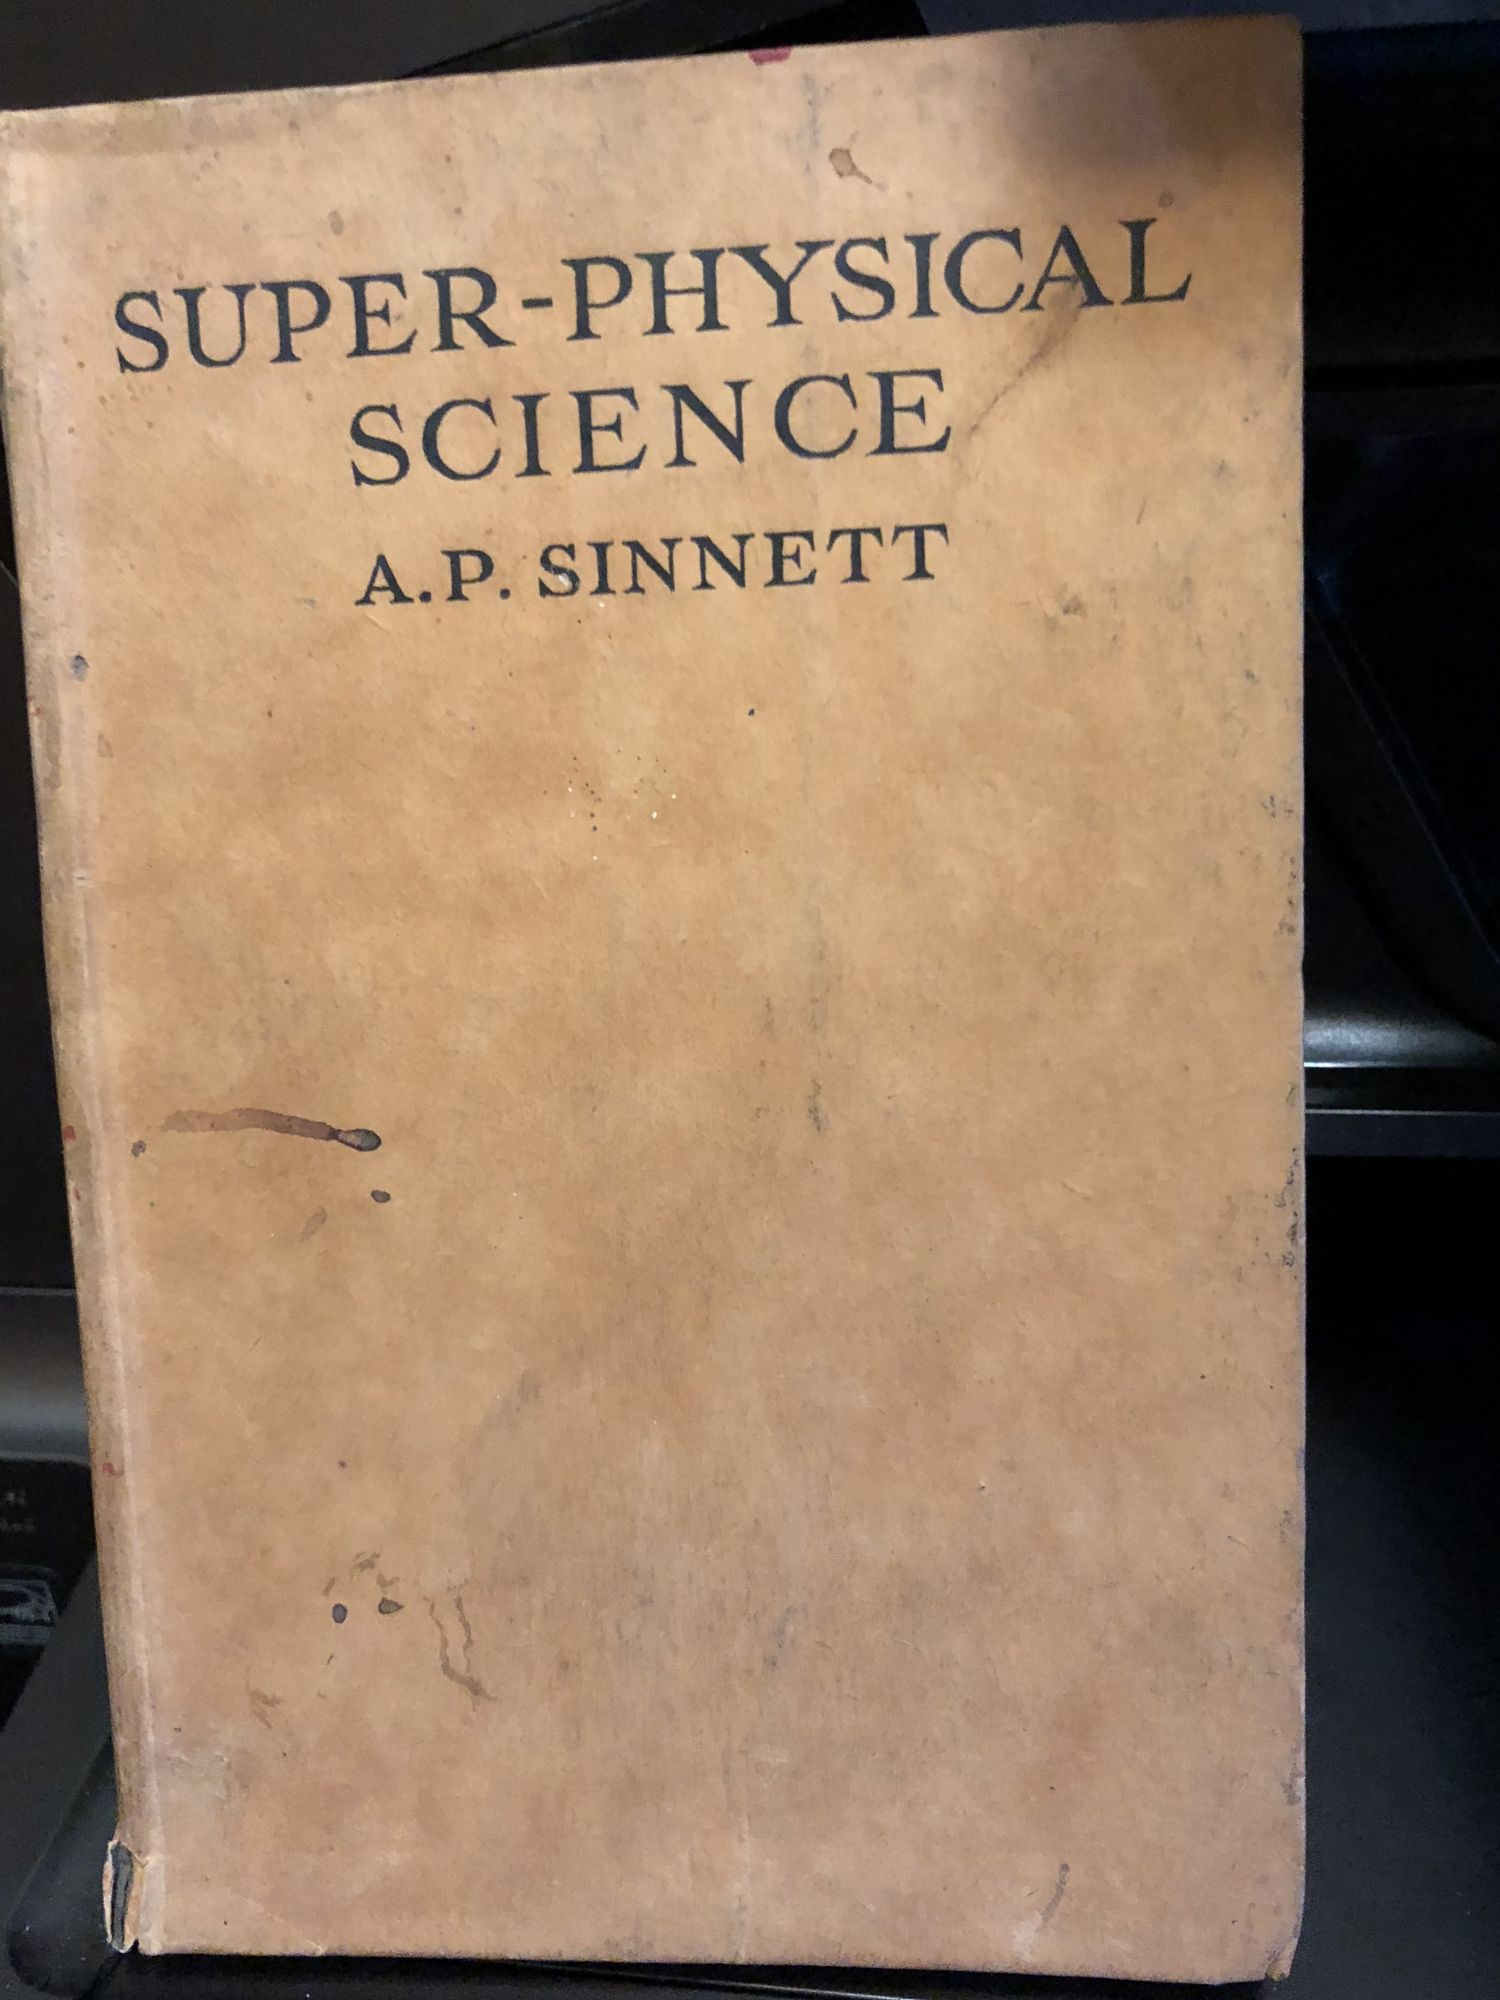 Super-Physical Science